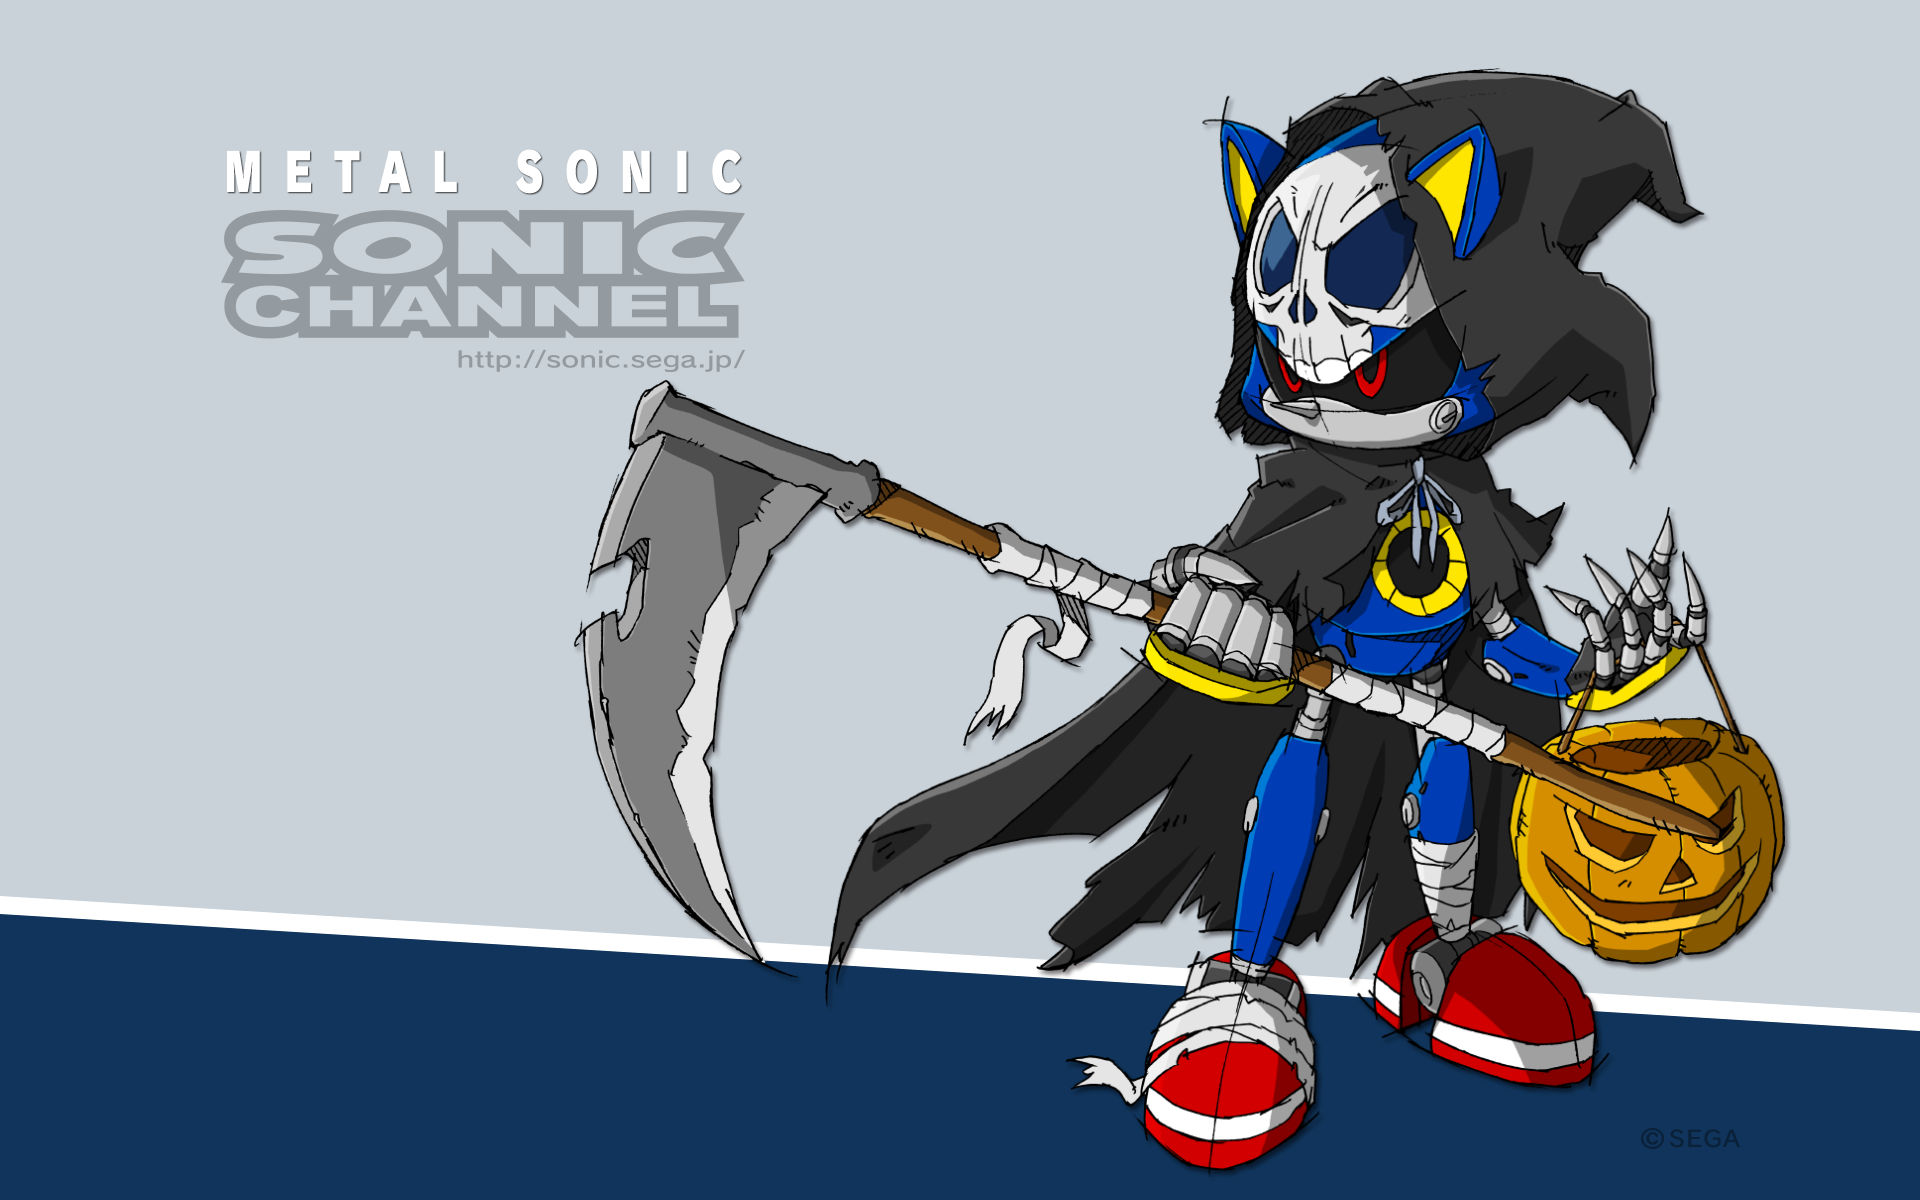 http://sonic.sega.jp/SonicChannel/enjoy/image/wallpaper_131_metal_03_pc.png